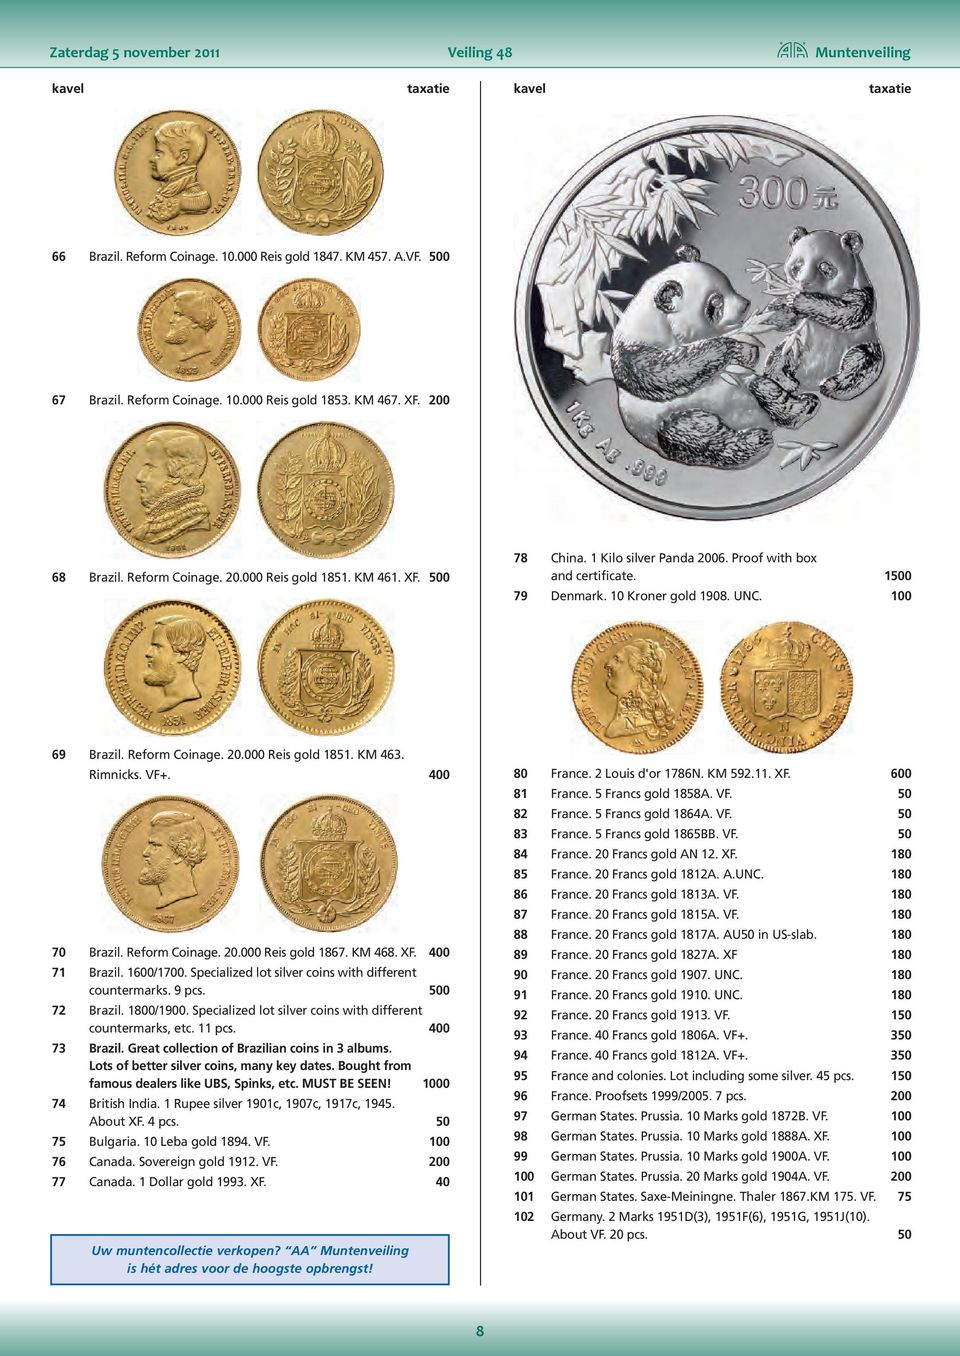 Rimnicks. VF+. 400 70 Brazil. Reform Coinage. 20.000 Reis gold 1867. KM 468. XF. 400 71 Brazil. 1600/1700. Specialized lot silver coins with different countermarks. 9 pcs. 500 72 Brazil. 1800/1900.